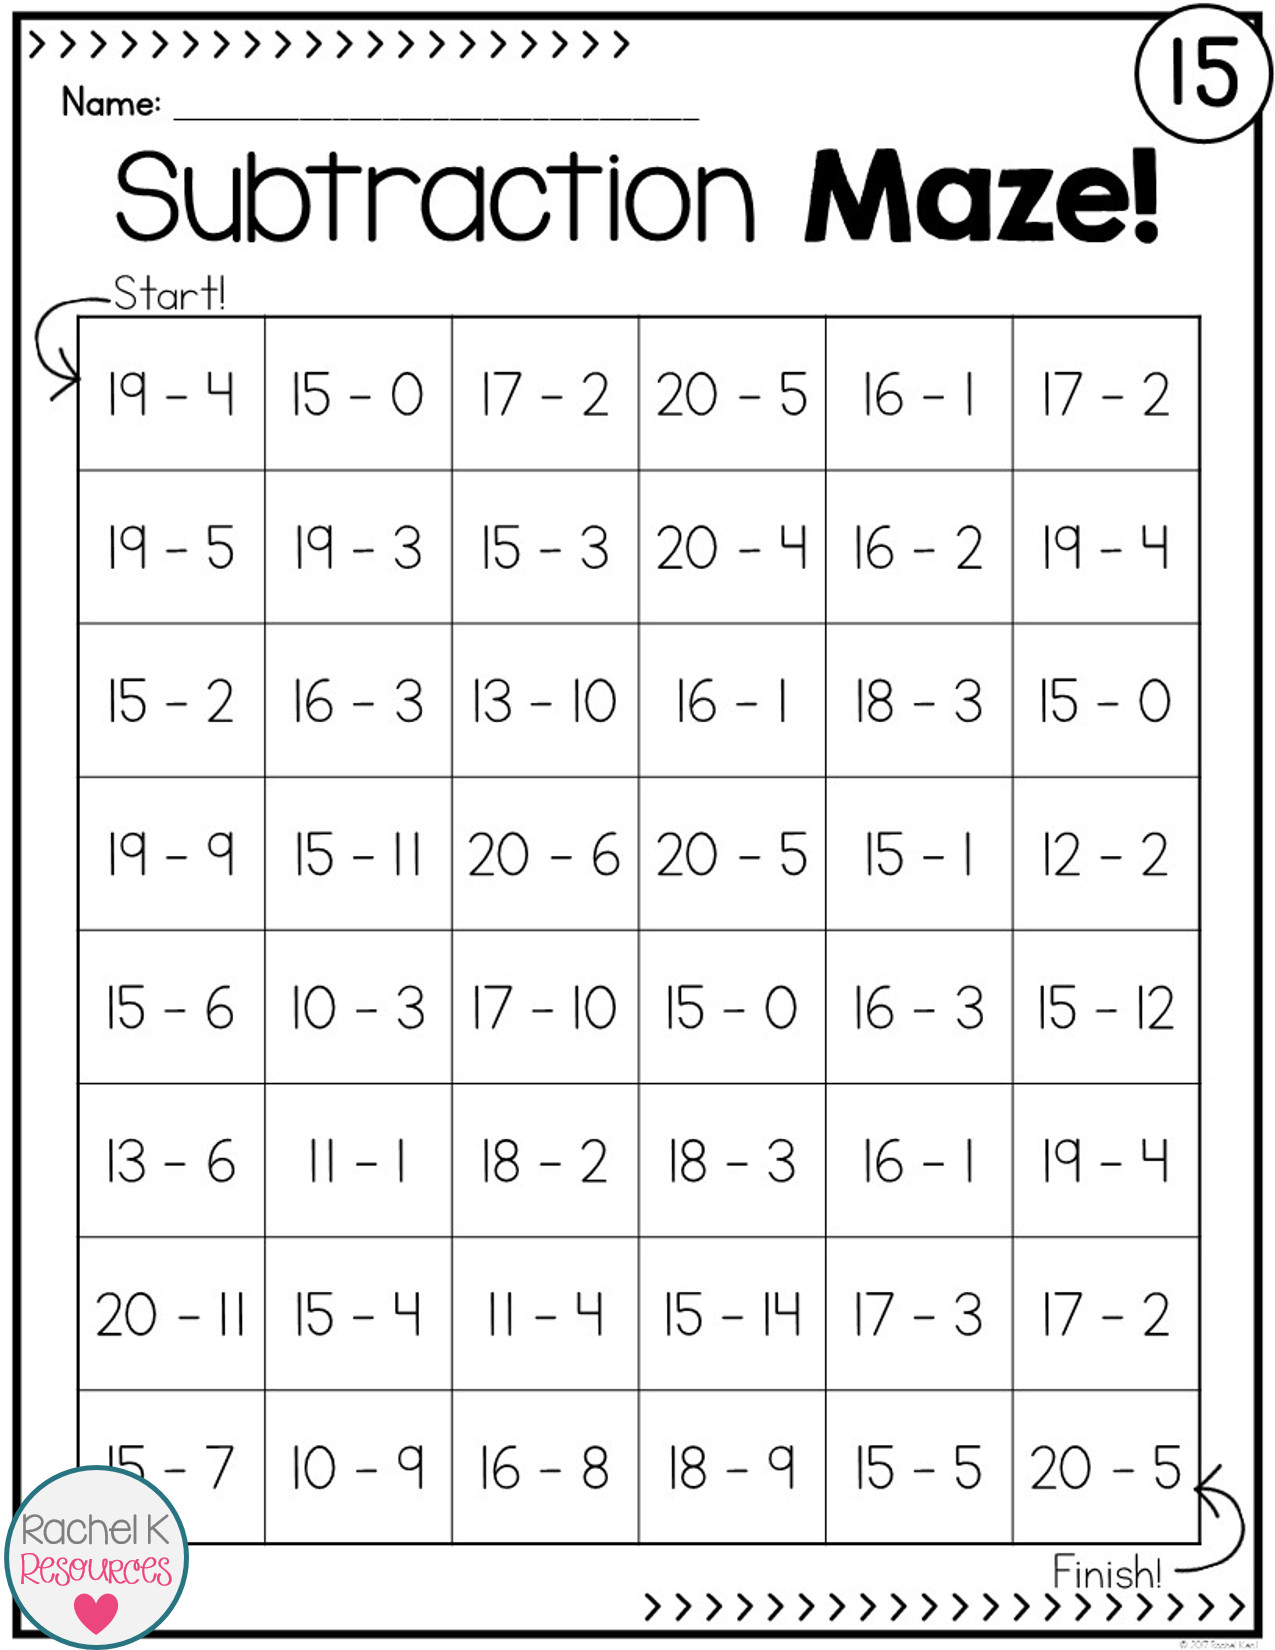 Subtraction Work Sheets Easy Subtraction Practice Mazes